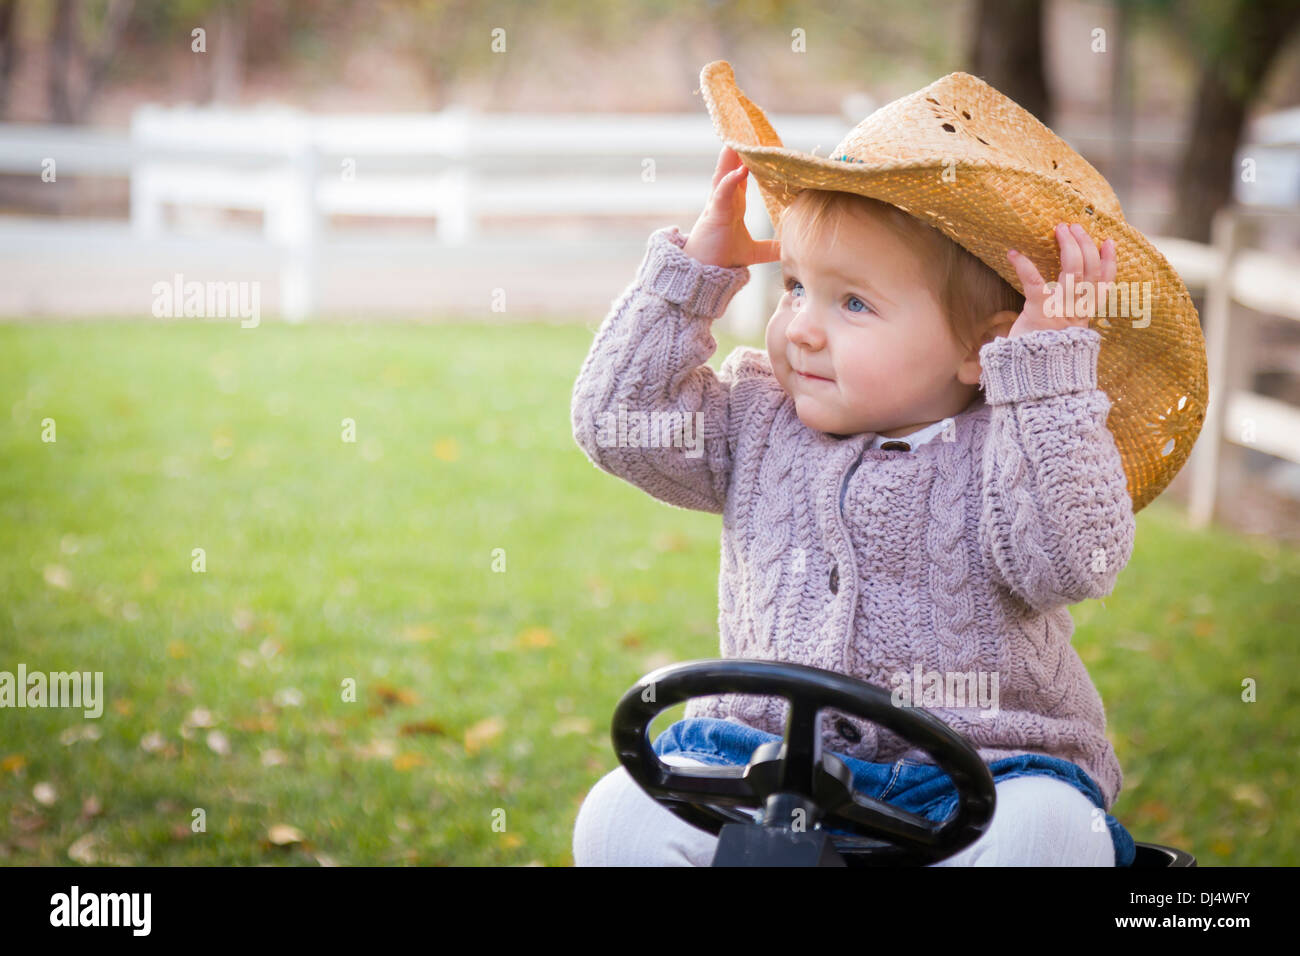 05a90840a5e1b Happy Young Toddler Wearing Cowboy Hat and Playing on Toy Tractor Outside.  - Stock Image